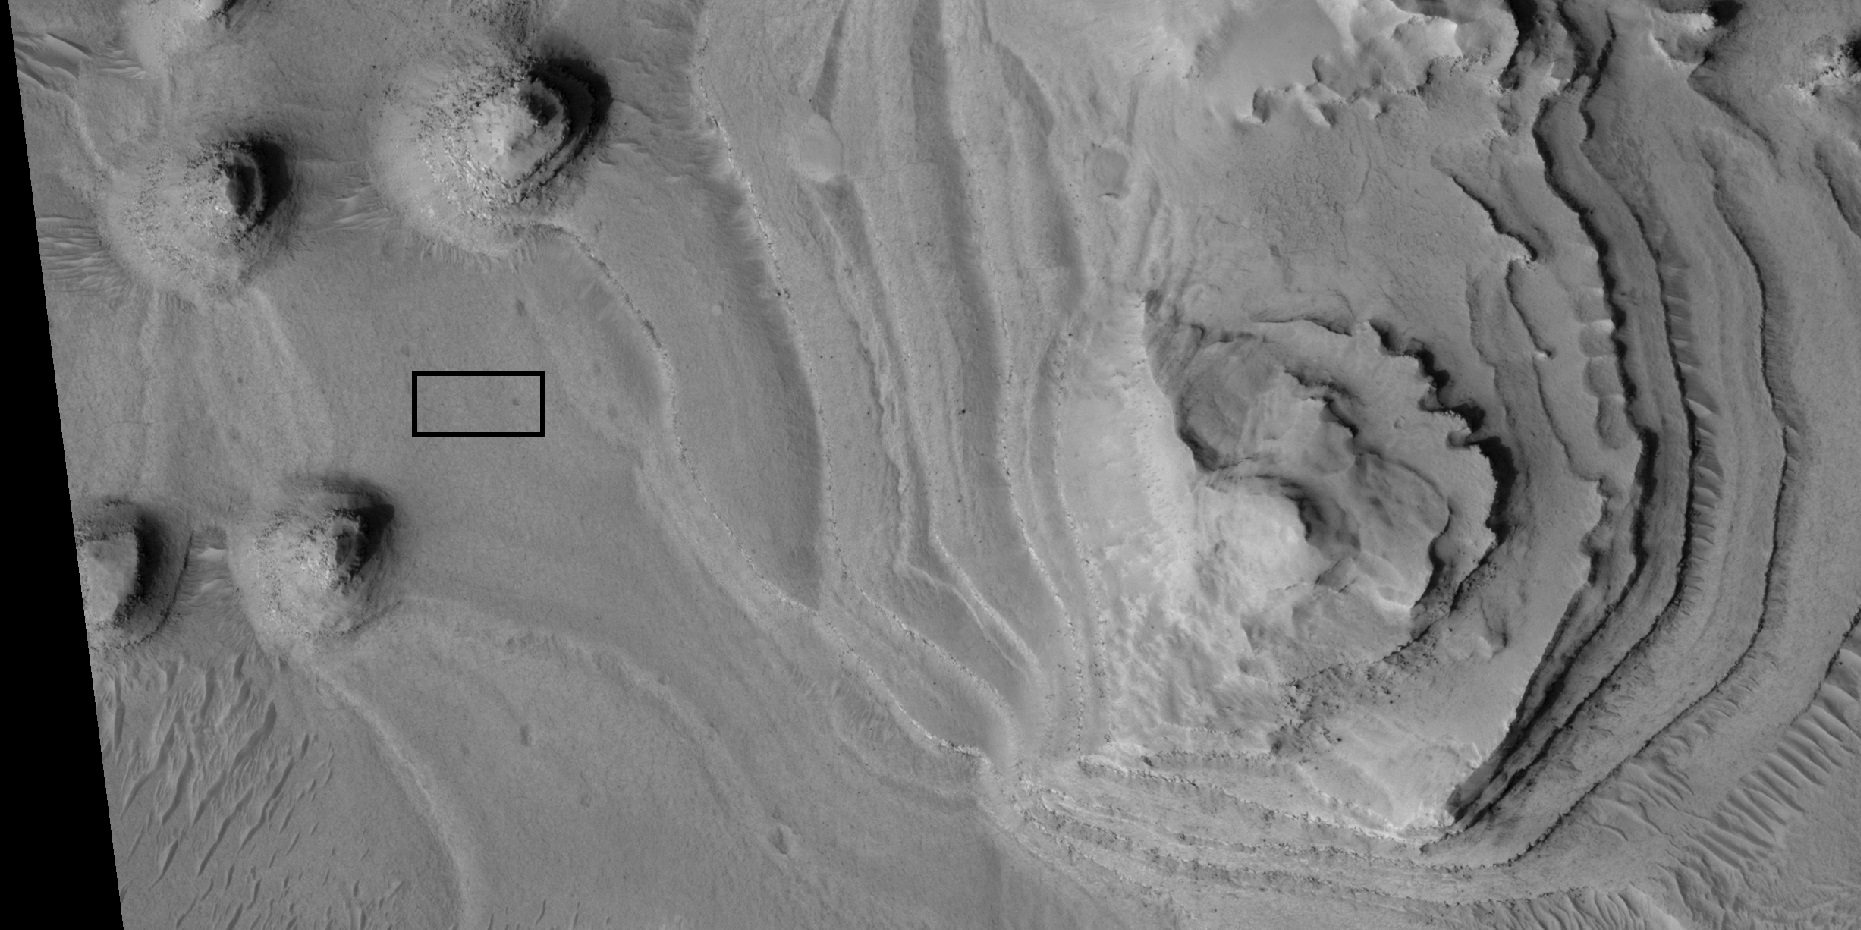 Close view of layers, as seen by HiRISE under HiWish program. Box shows the size of a football field.